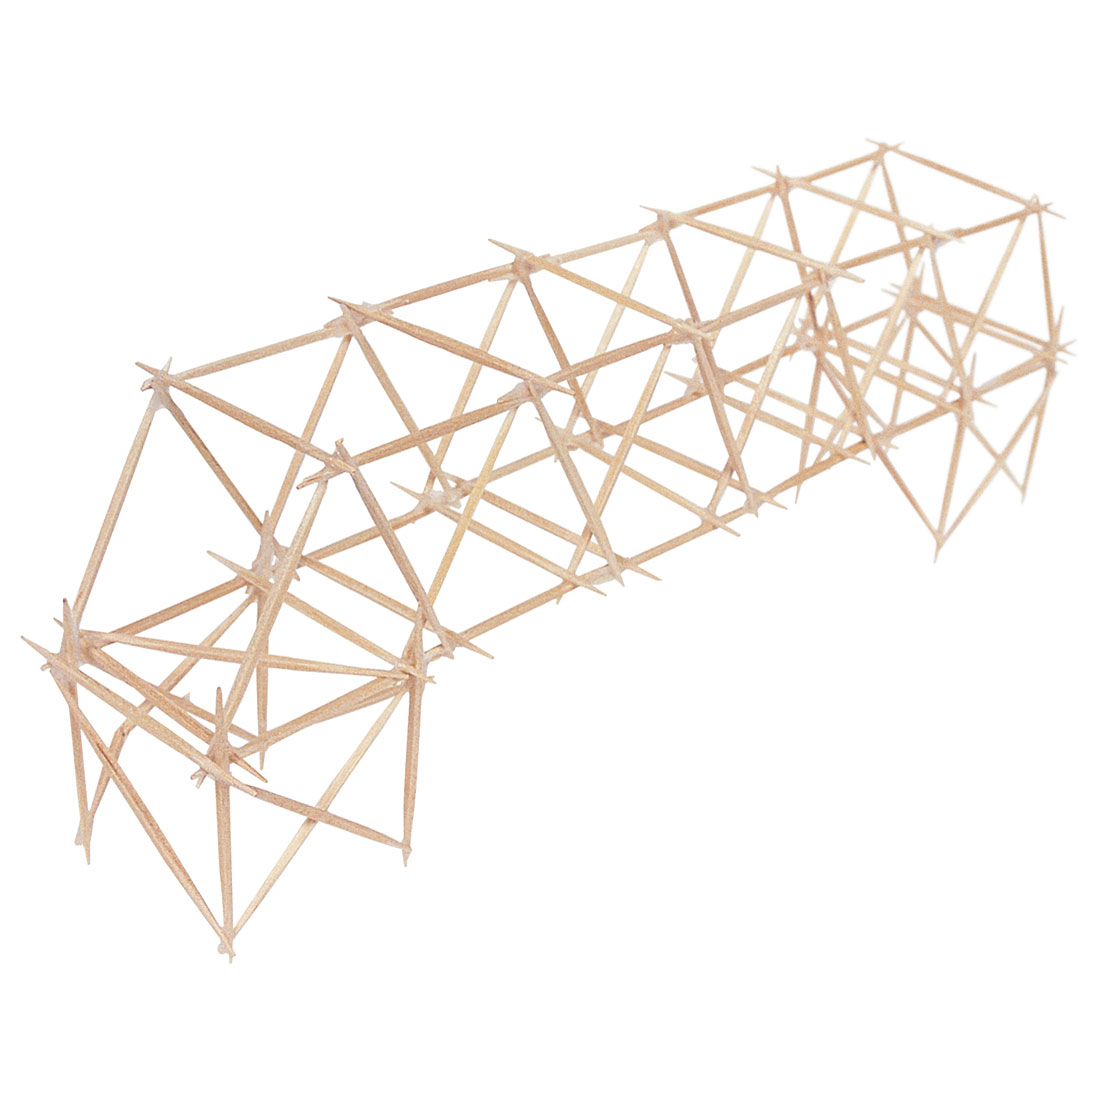 Toothpick bridges getting started package w35589 for Bridge design